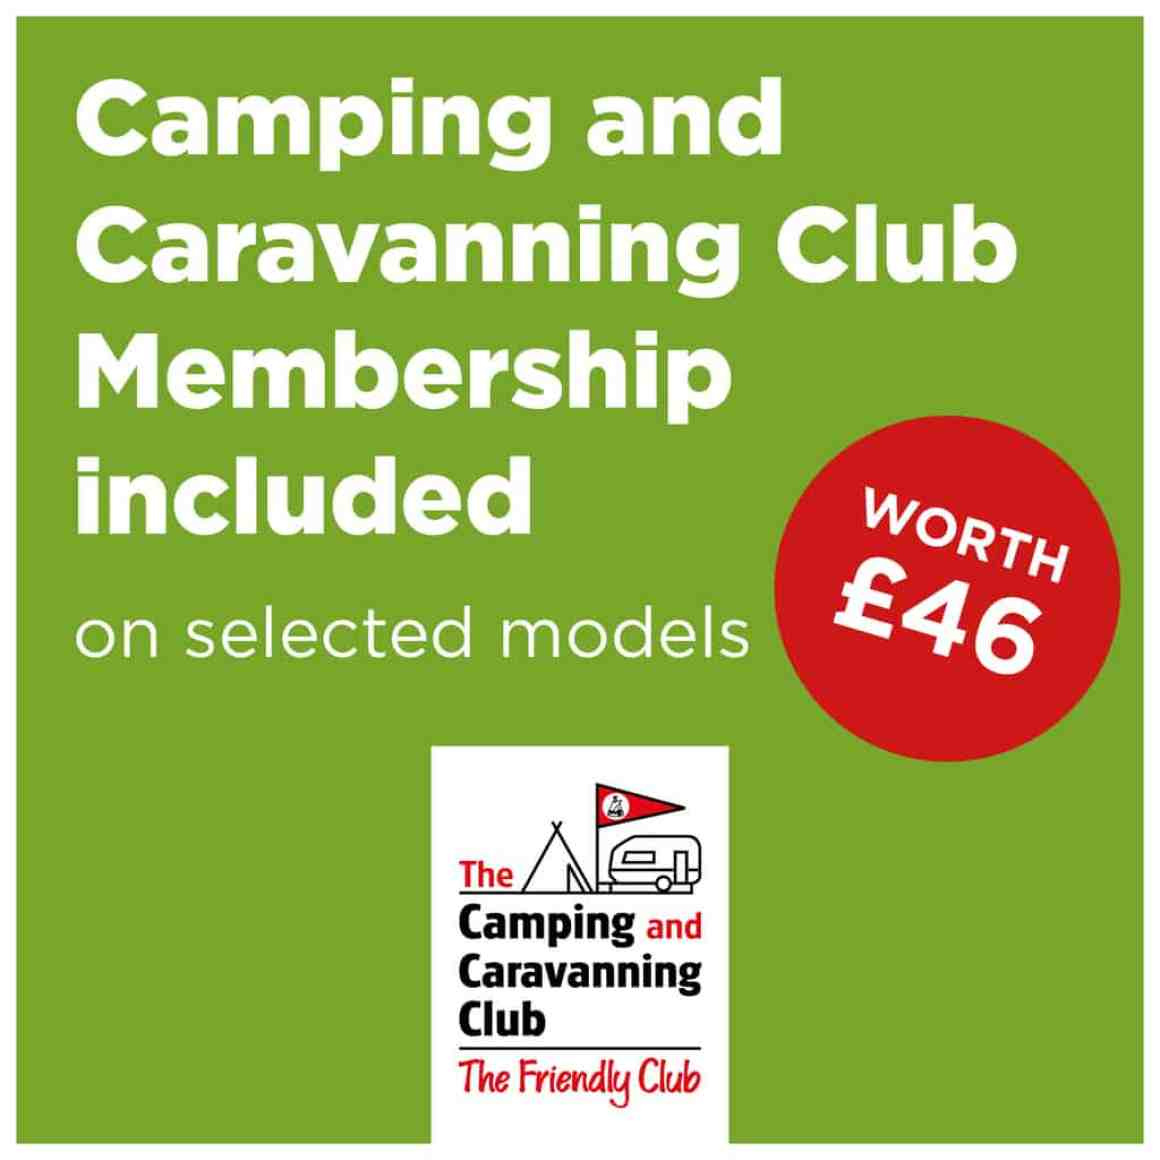 Camping and Caravan Club Membership